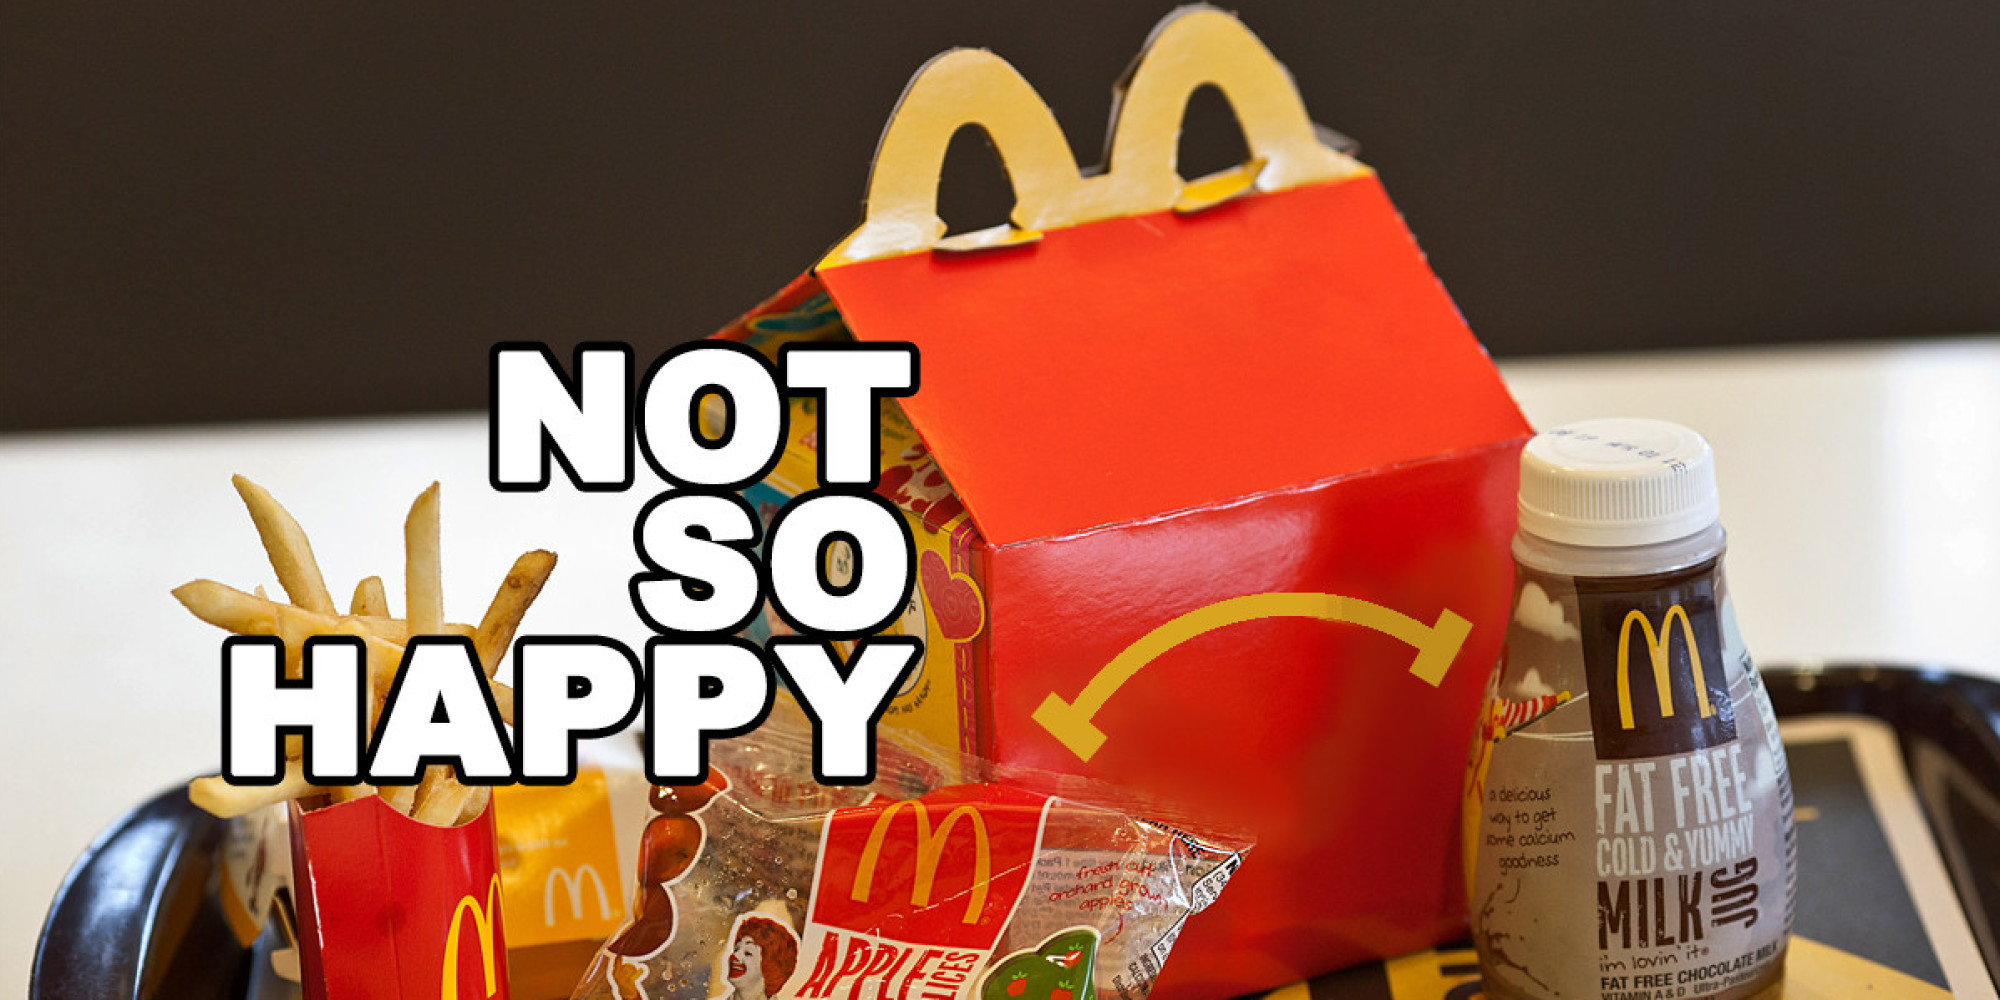 11 Unsettling Facts You Should Know About McDonald39;s Happy Meals